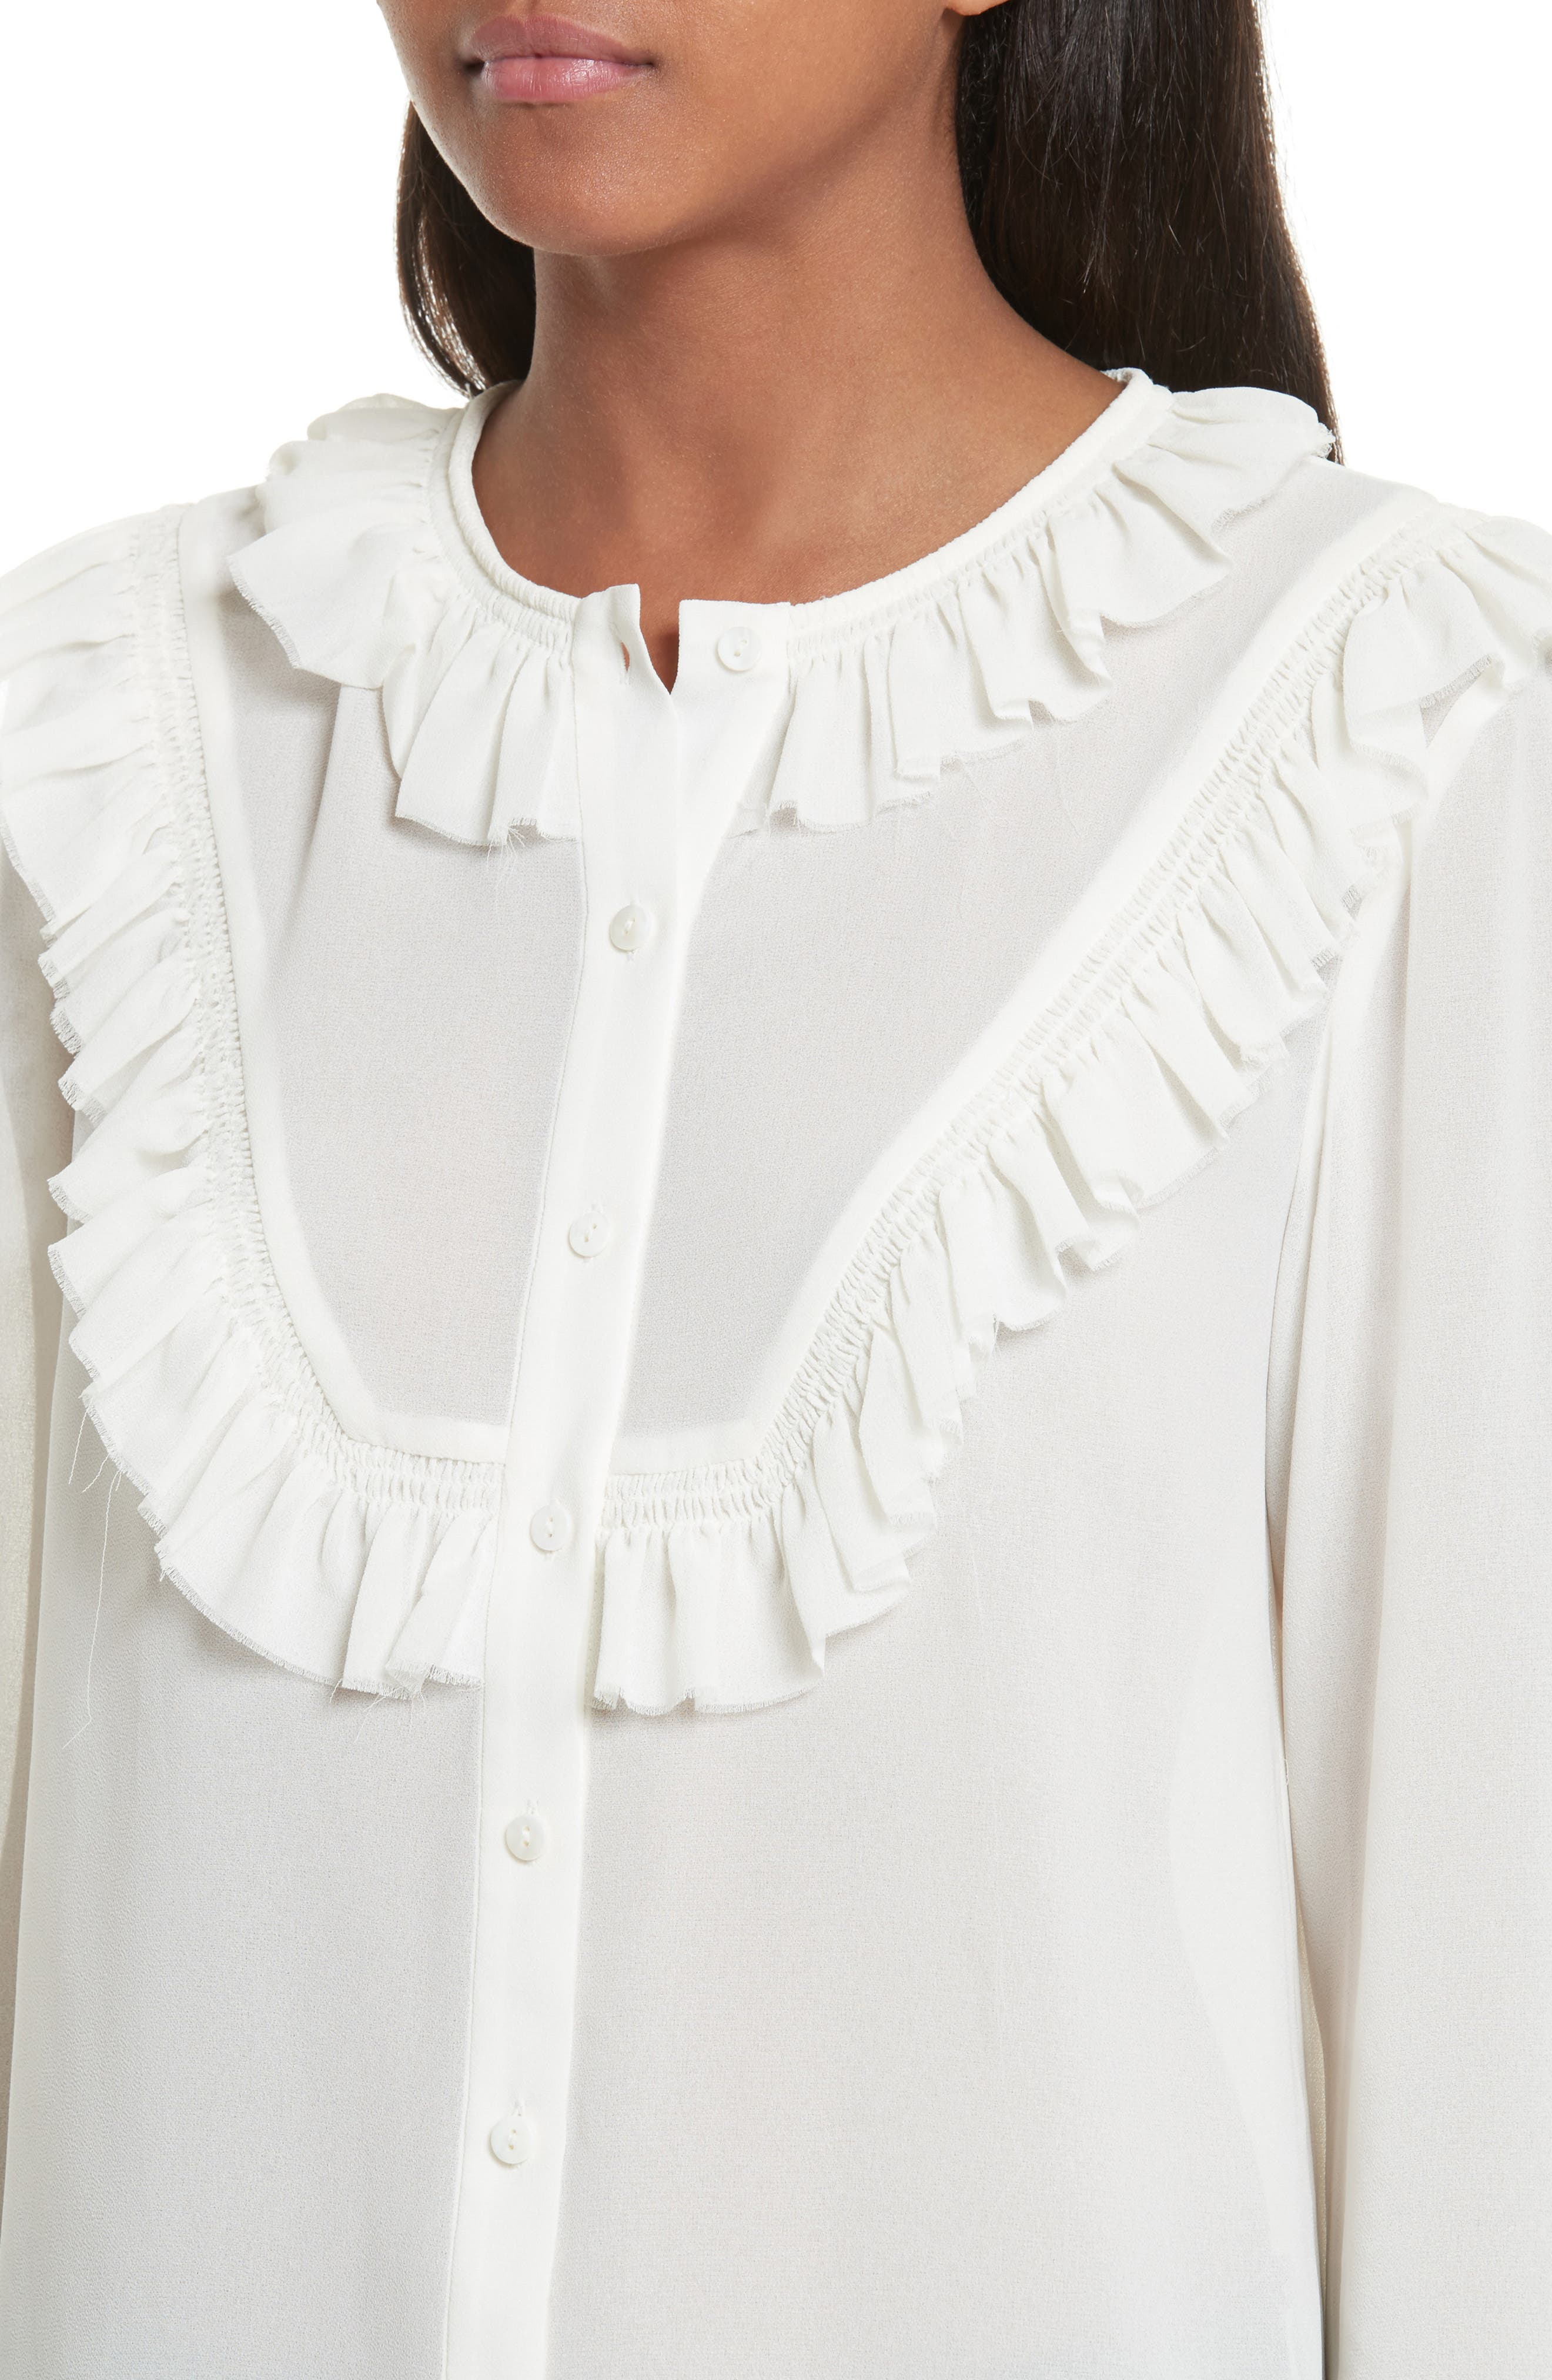 Pleated Ruffle Shirt,                             Alternate thumbnail 4, color,                             900